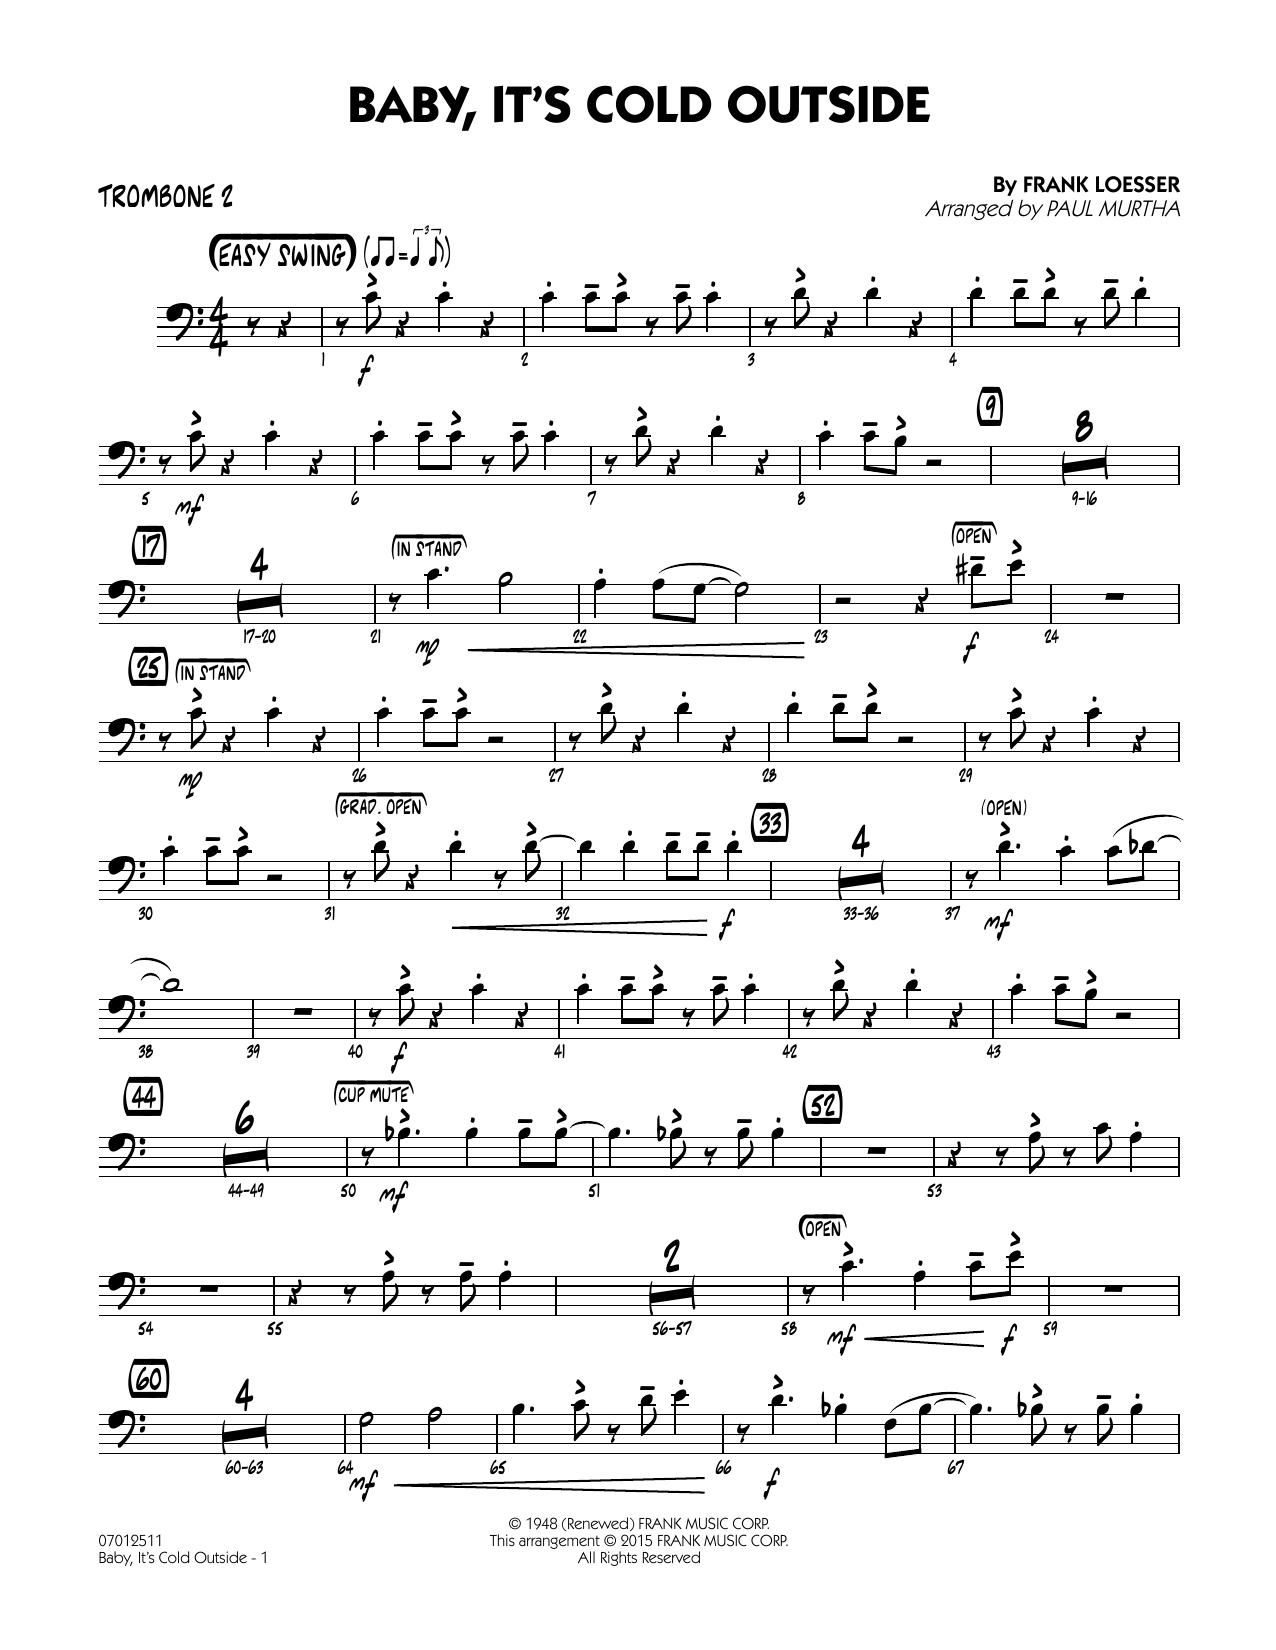 Paul Murtha Baby, It's Cold Outside (Key: C) - Trombone 2 sheet music notes and chords. Download Printable PDF.